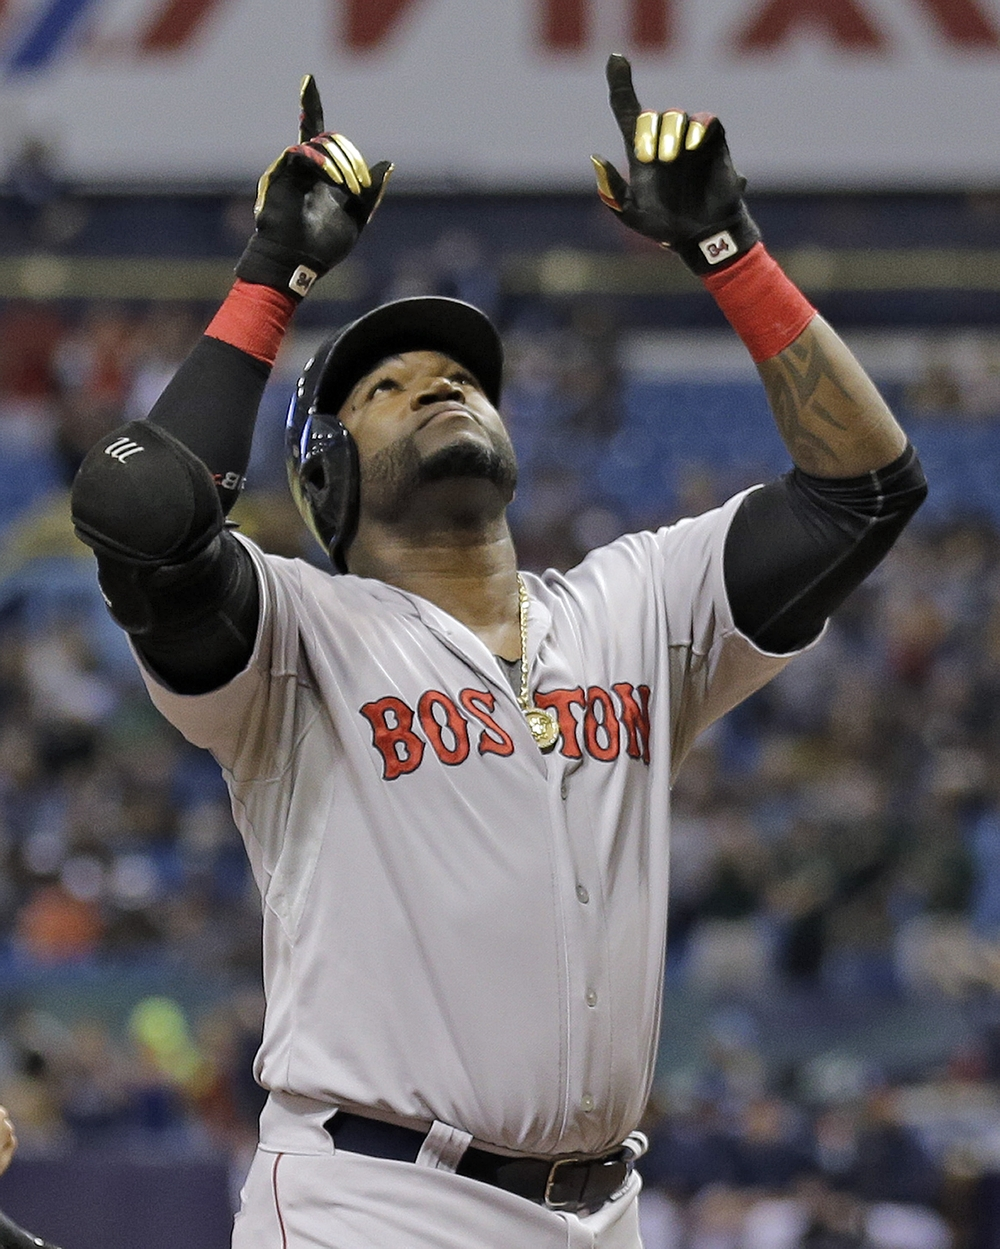 Boston Red Sox's David Ortiz reacts after hitting his 500th career home run off Tampa Bay Rays starting pitcher Matt Moore during the fifth inning of a baseball game Saturday, Sept. 12, 2015, in St. Petersburg, Fla. (Chris O'Meara/AP)